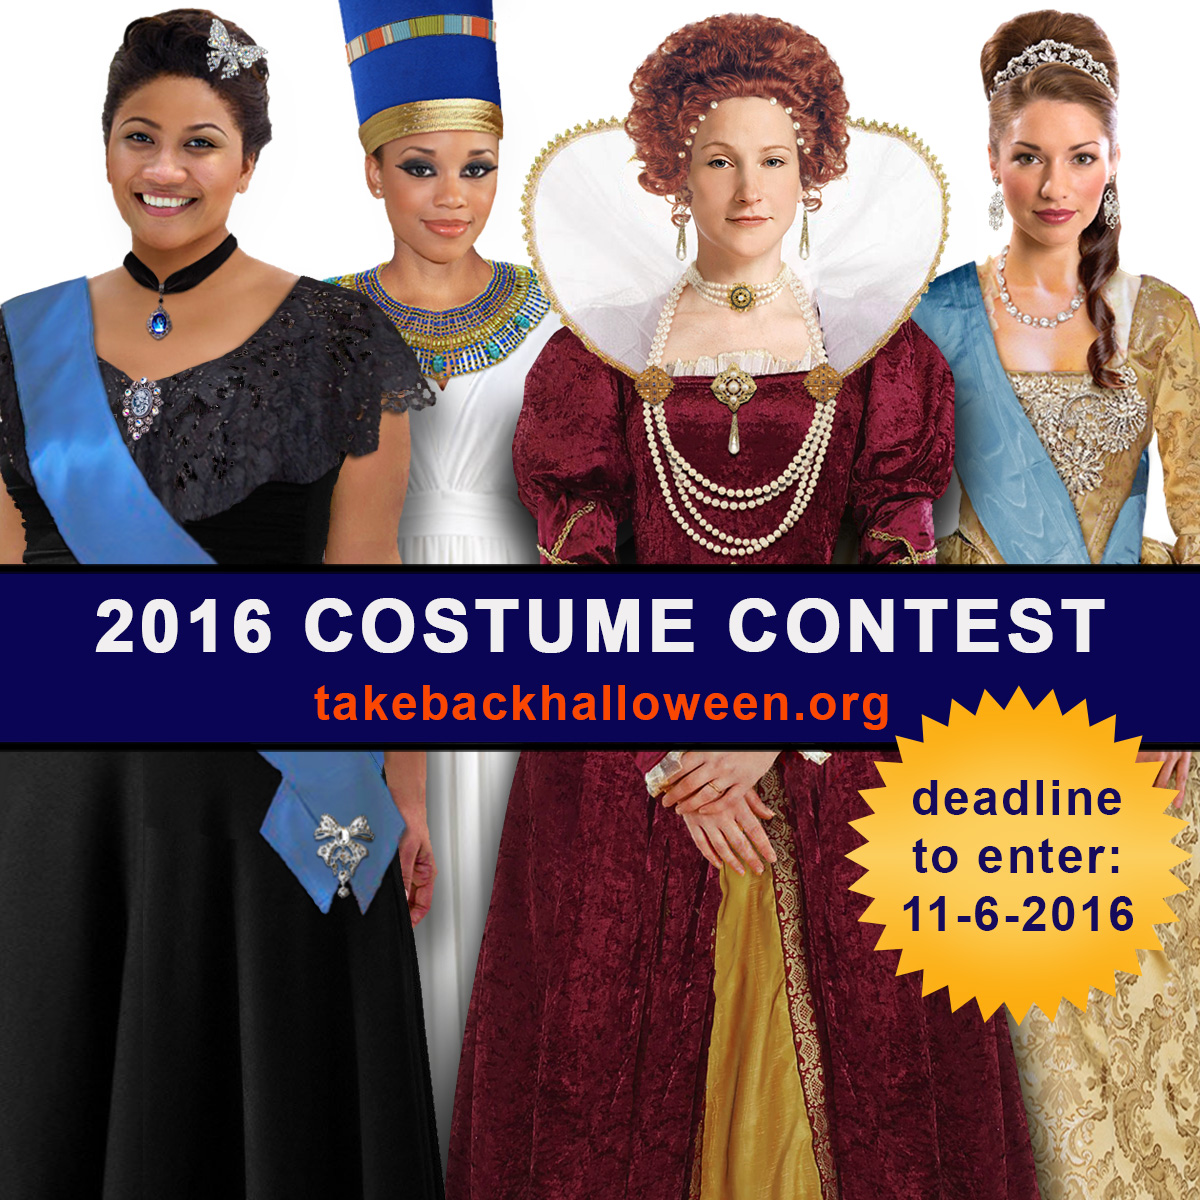 Take Back Halloween 2016 Costume Contest